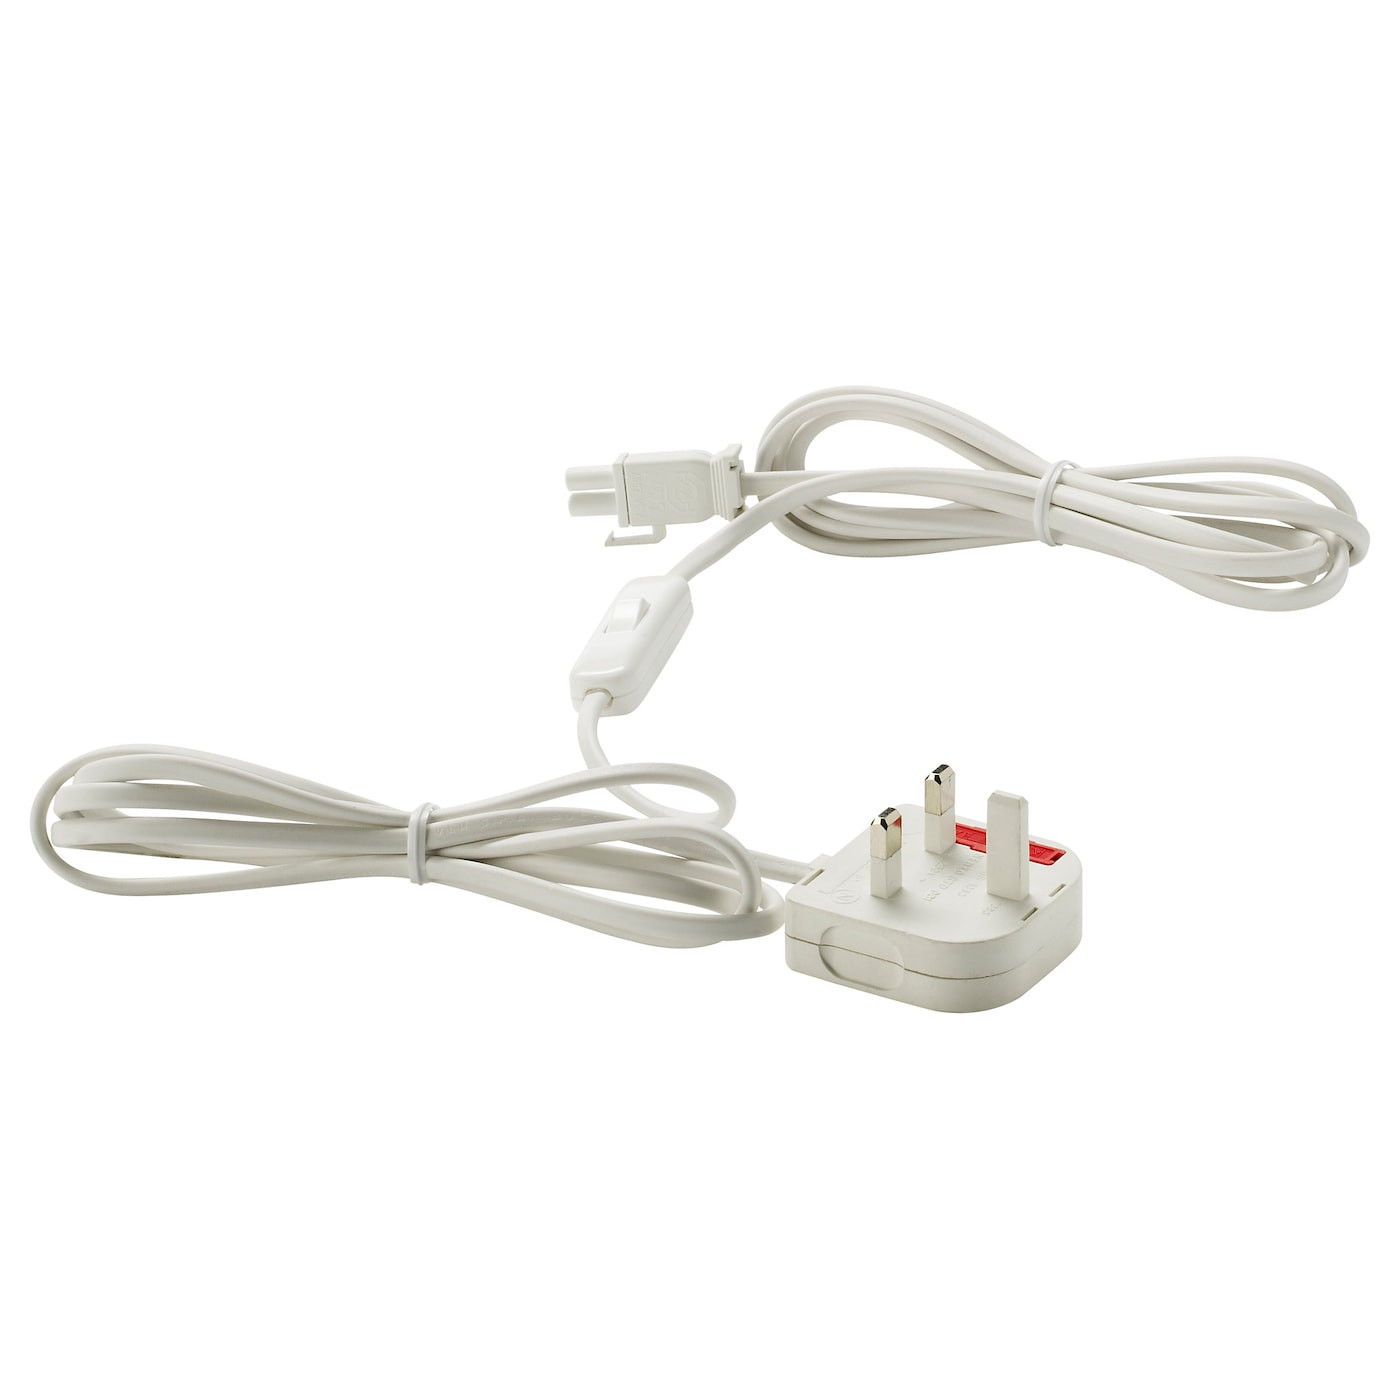 IKEA ANSLUTA power supply cord